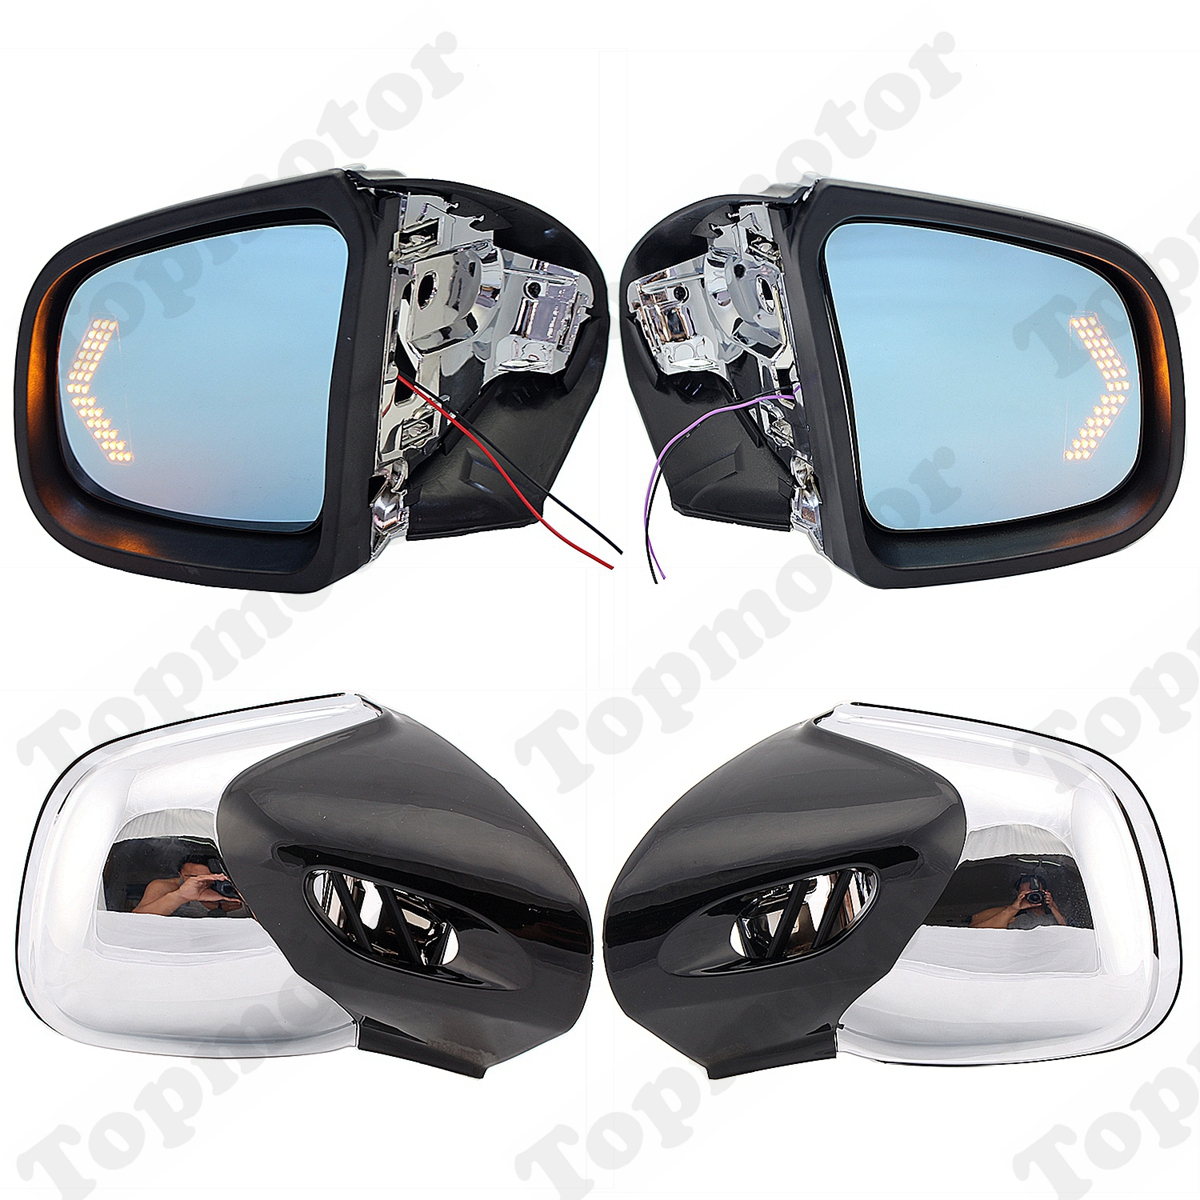 Motorcycle Rearview Side Mirrors For BMW K1200 K1200LT K1200M 1999-2008 05 03 02